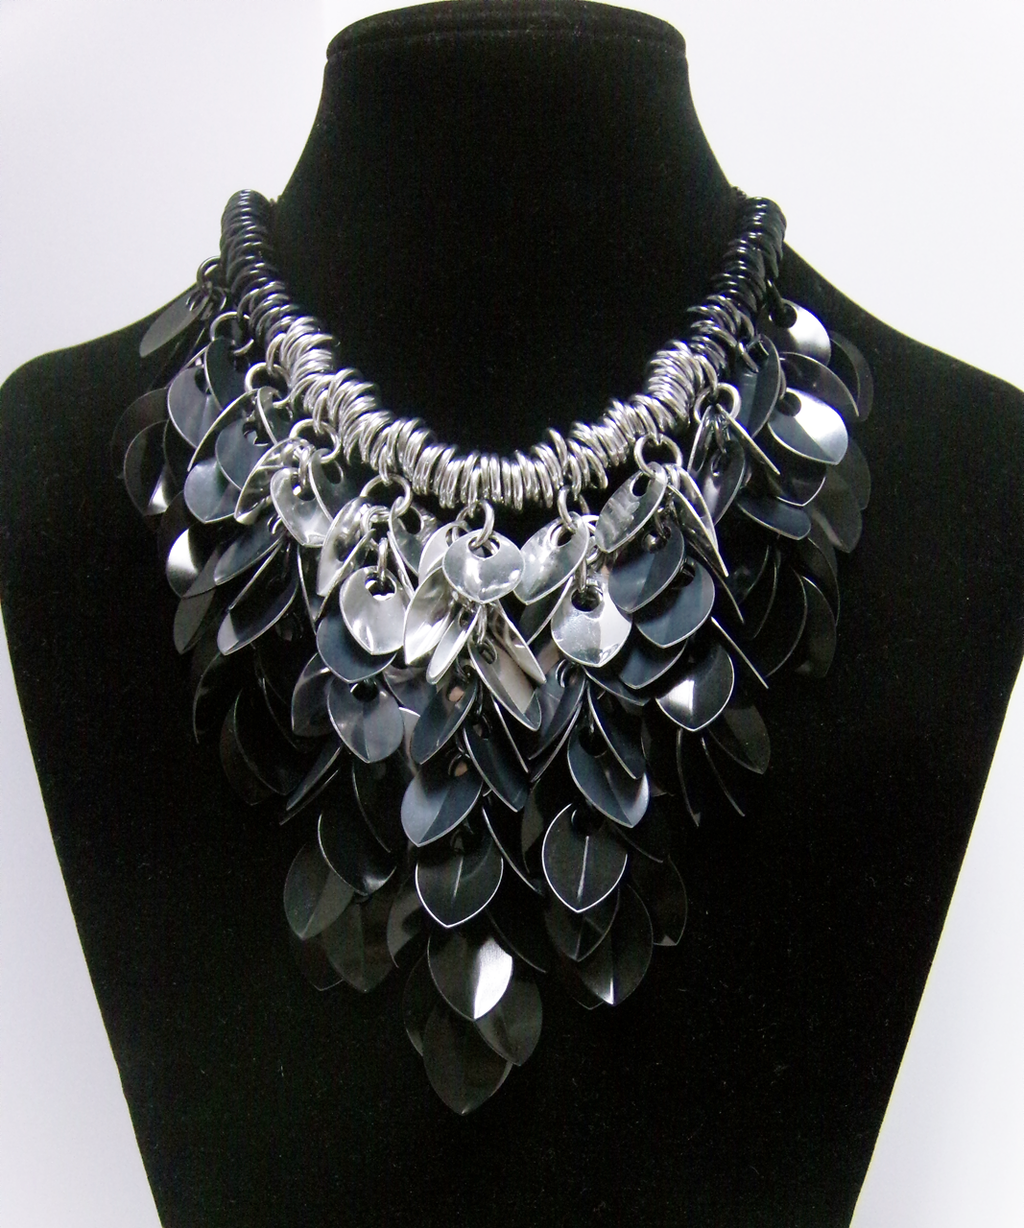 Most recent image: Monochrome Scale Statement Necklace